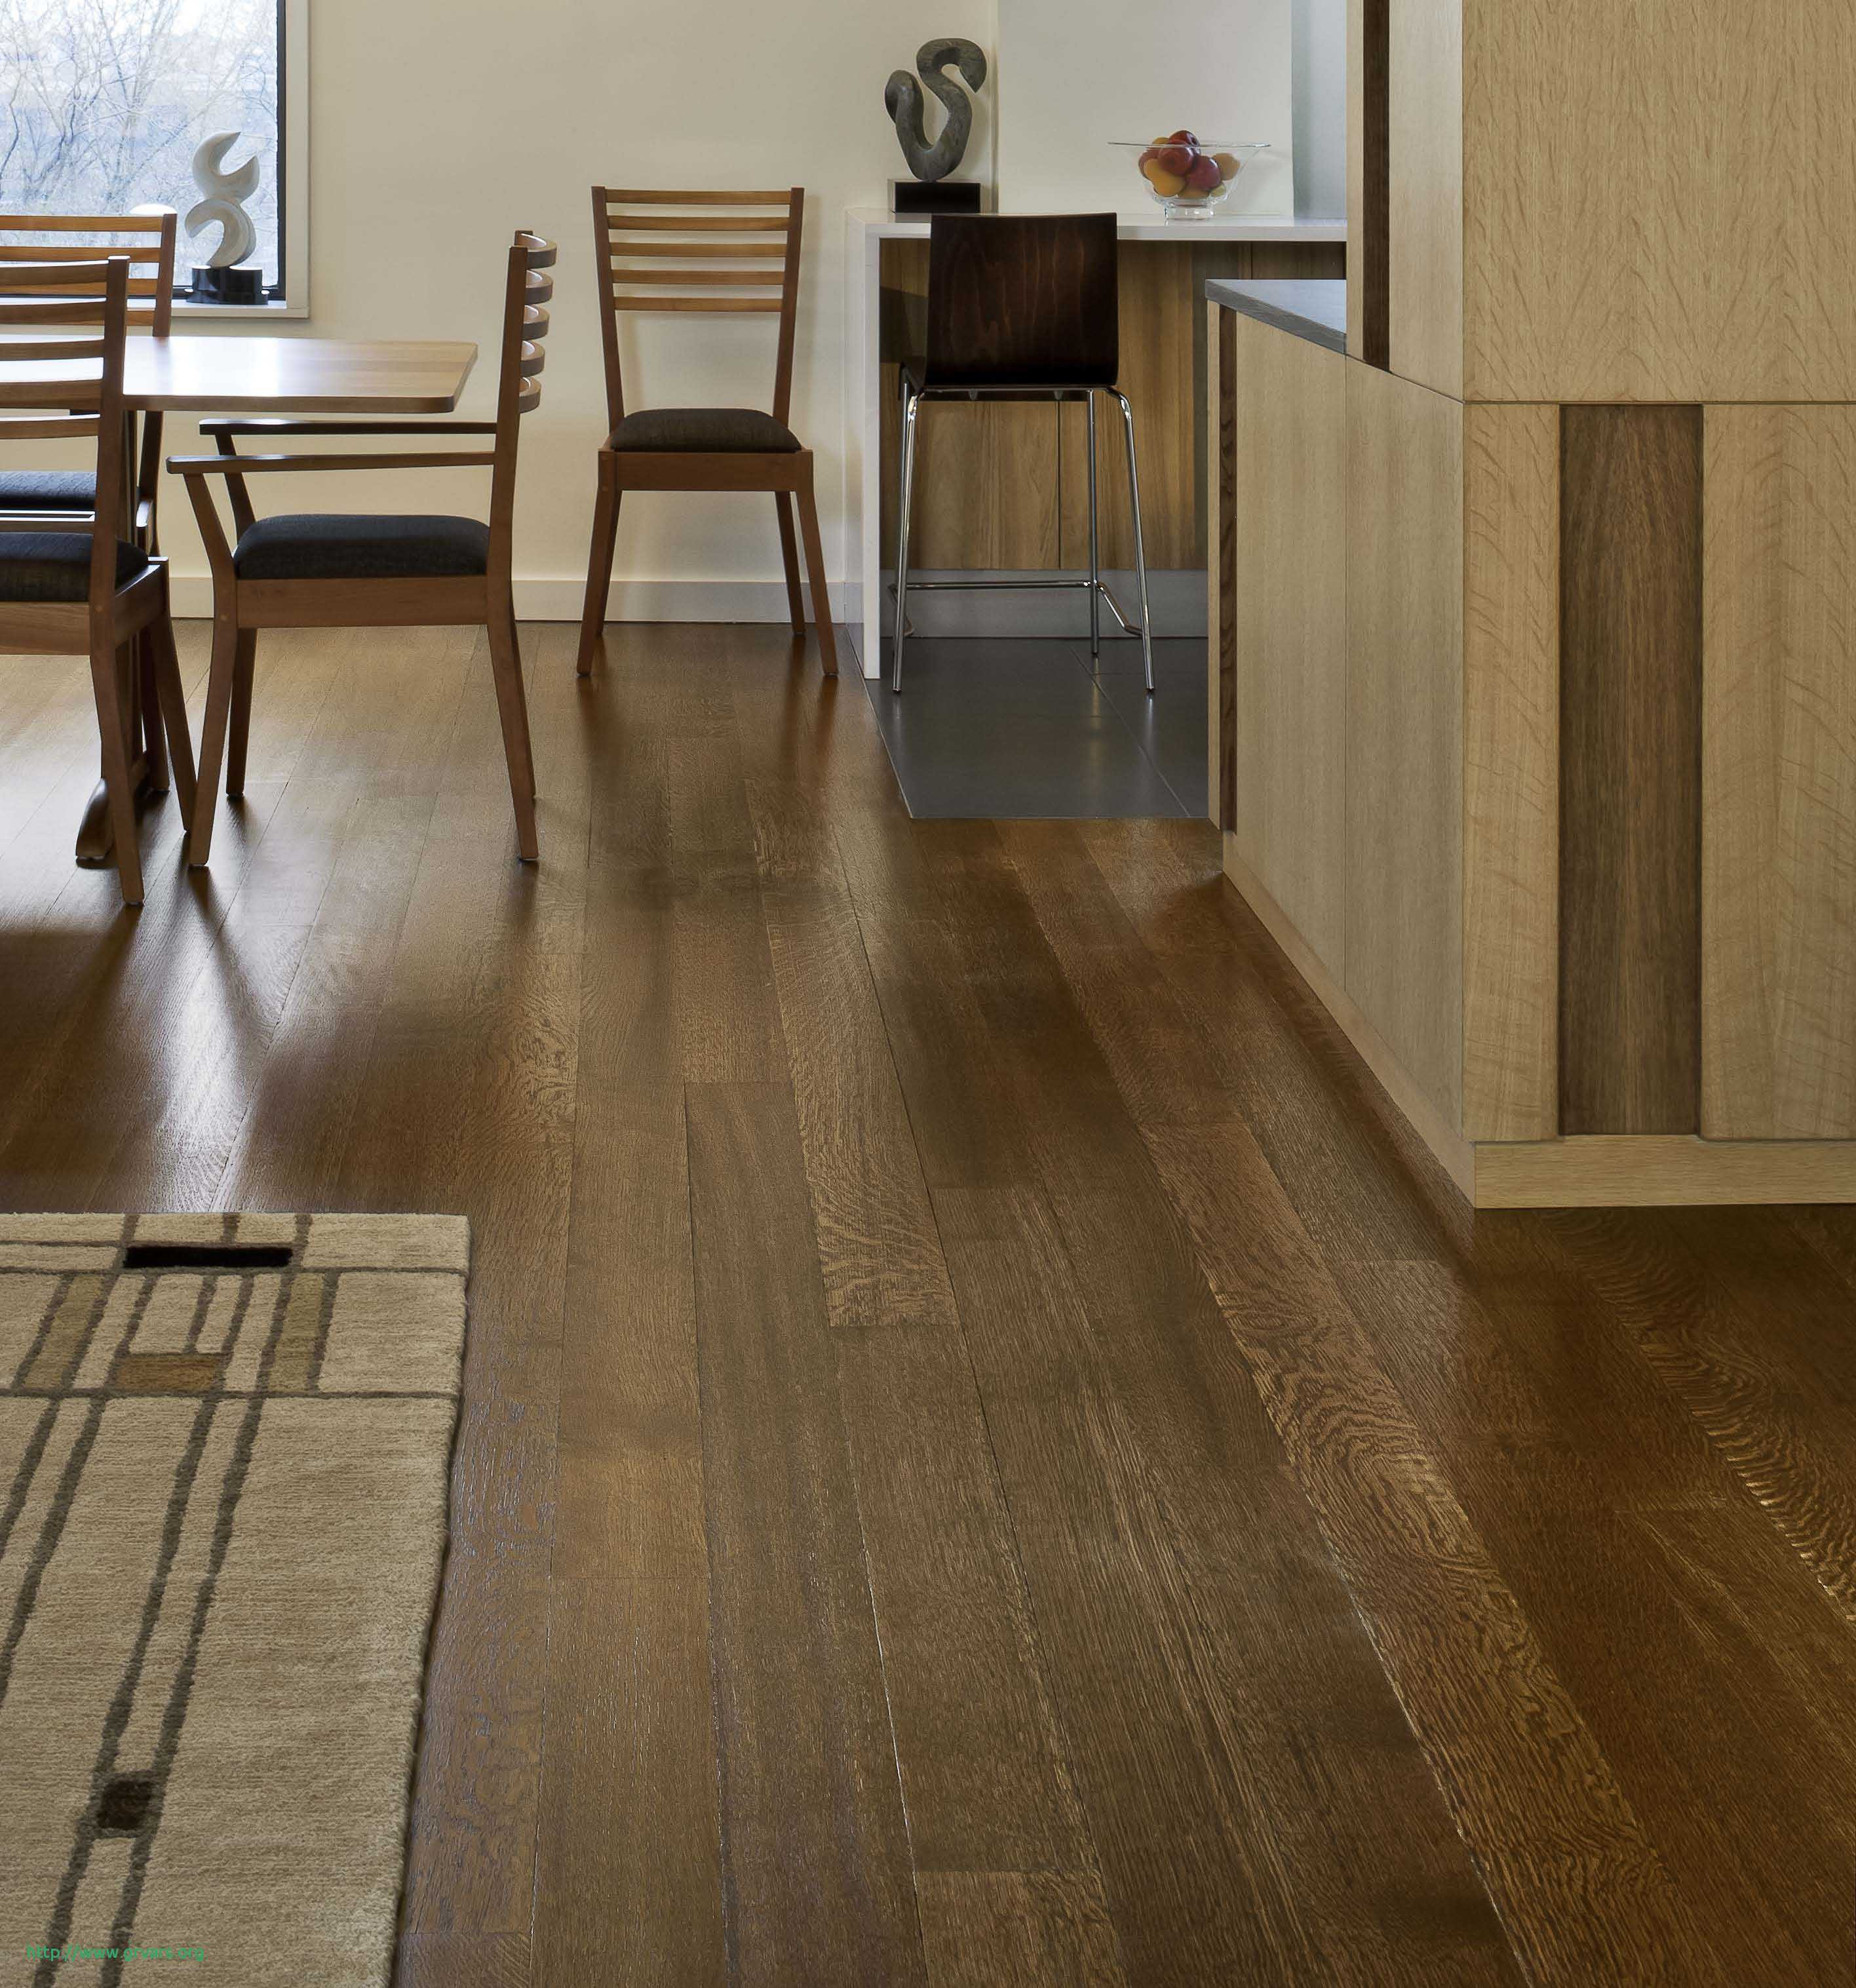 Hand Scraped Hardwood Flooring Manufacturers Of 16 Impressionnant Bruce Flooring Customer Service Ideas Blog Intended for Bruce Flooring Customer Service Inspirant Engaging Discount Hardwood Flooring 5 where to Buy Inspirational 0d